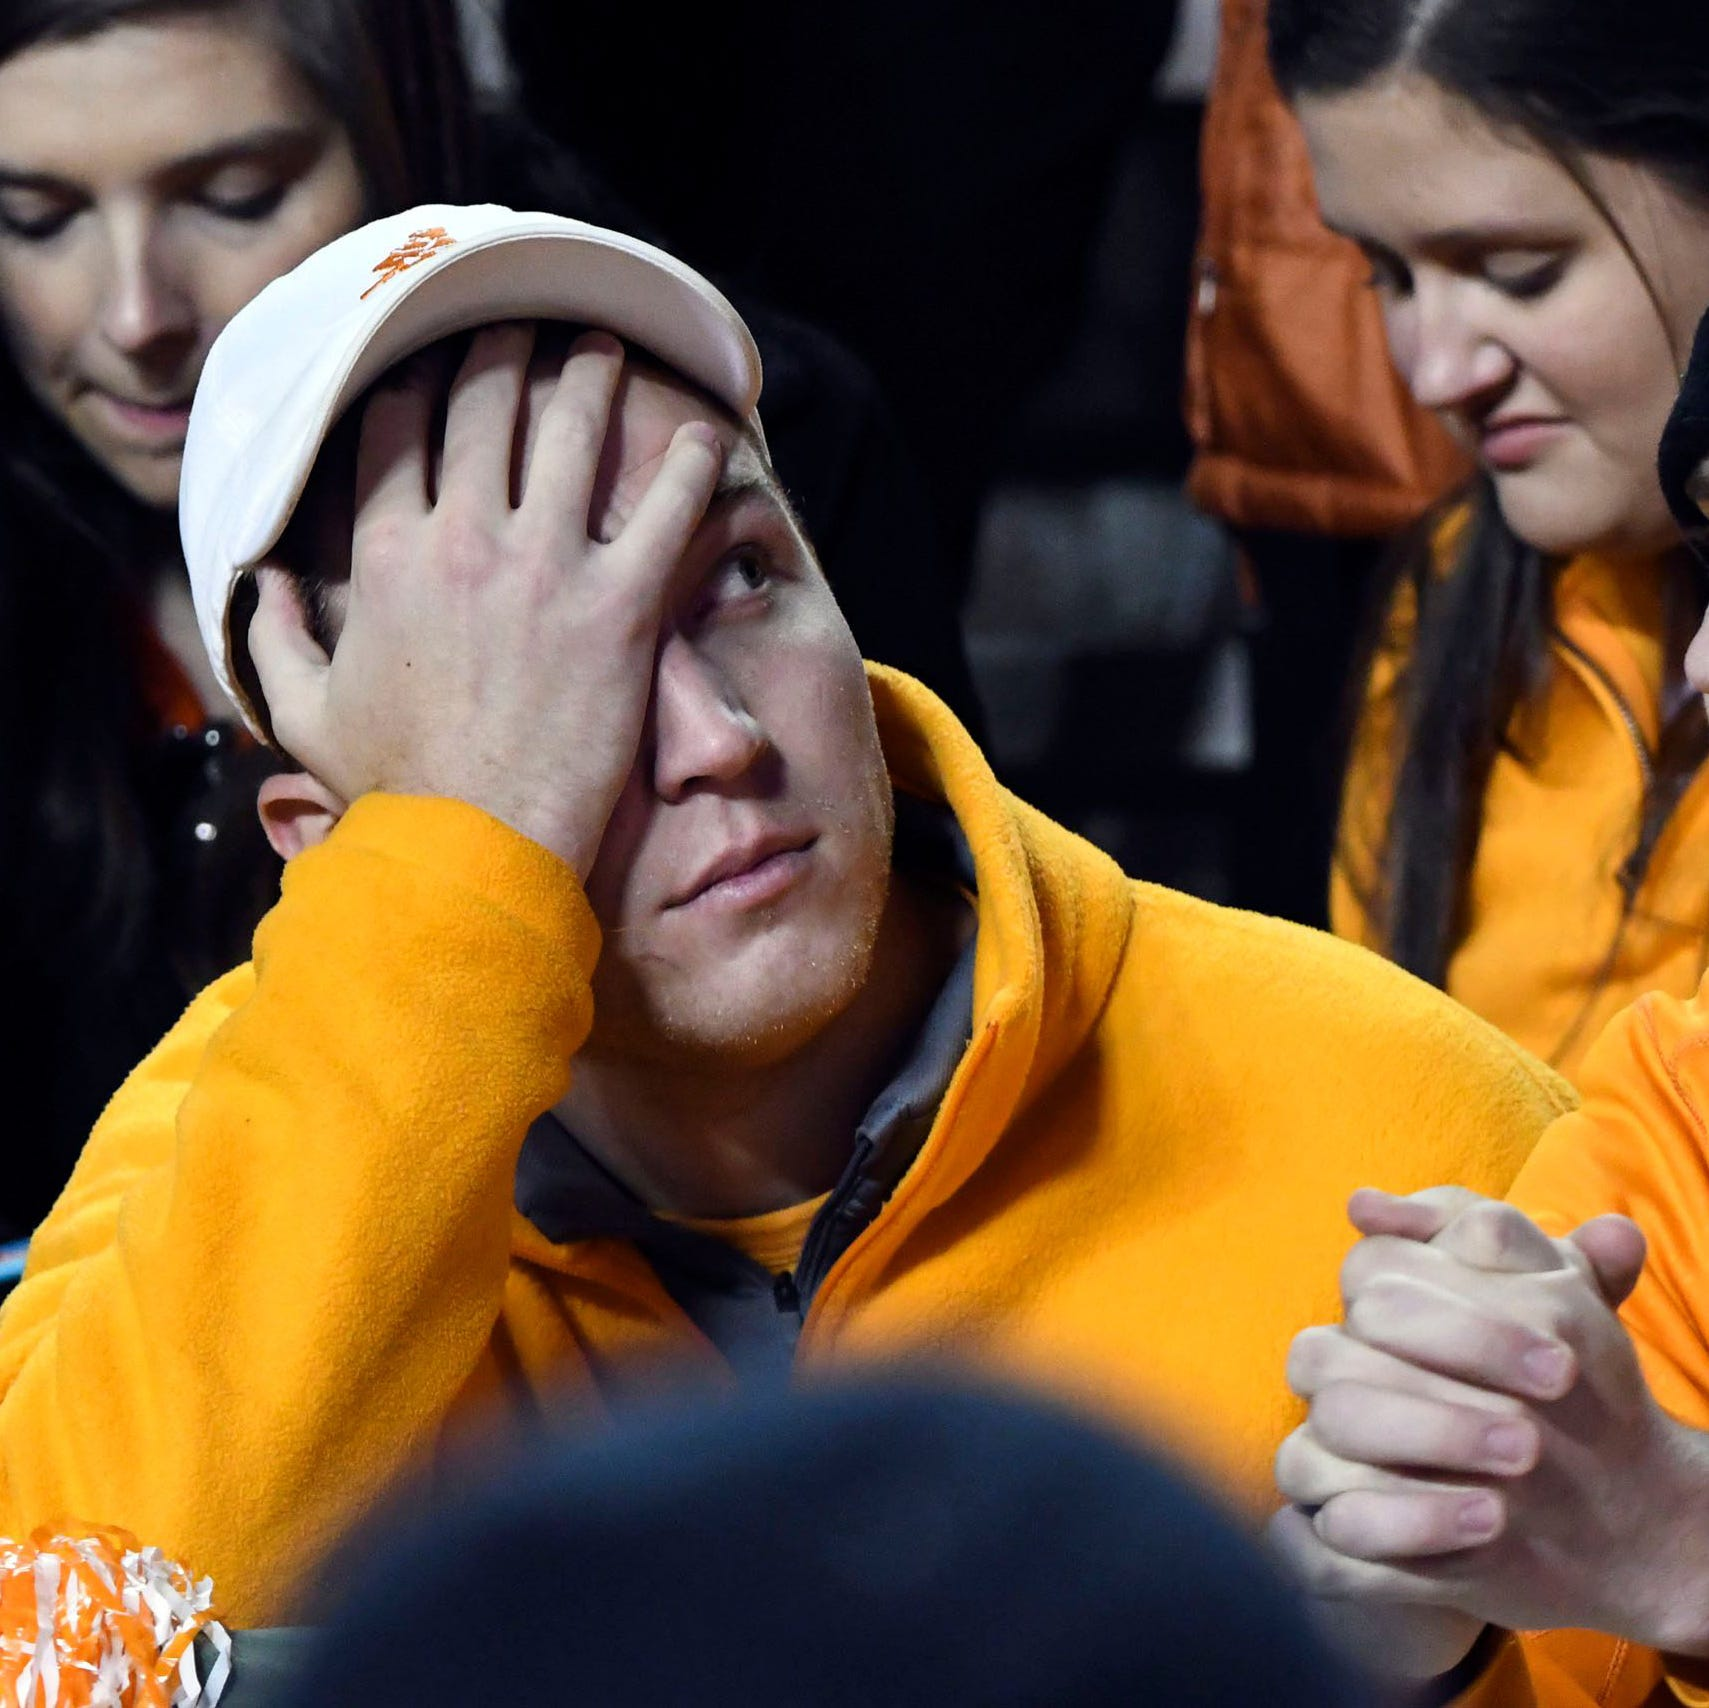 UT Vols make Derek Dooley look like a genius, Drew Lock look like first-round NFL pick